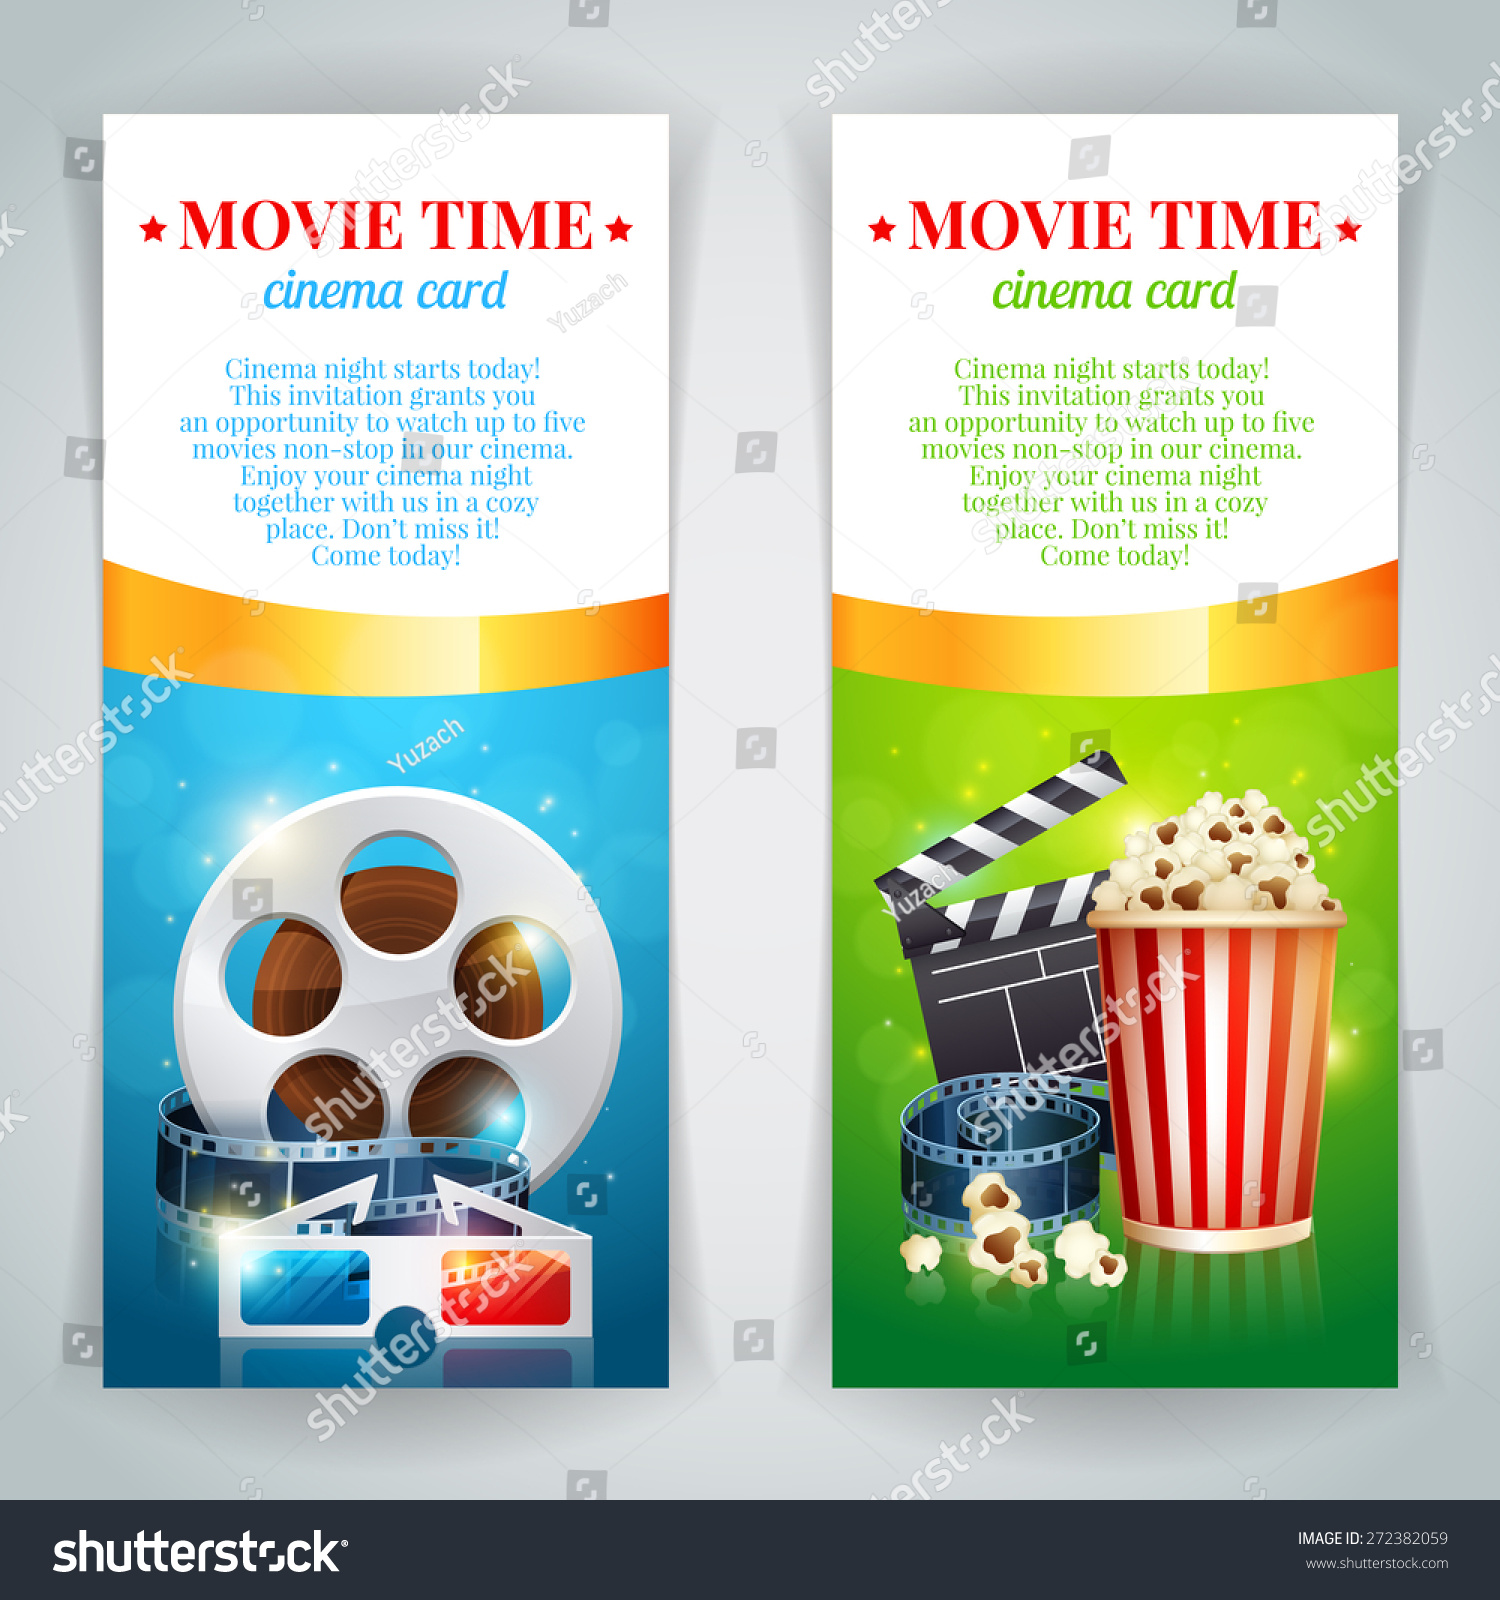 Awesome 1099 Template Excel Small 1099 Template Word Rectangular 2014 Monthly Calendar Templates 2015 Template Calendar Old 3d Animator Resume Templates Soft3d Character Modeler Resume Realistic Cinema Movie Poster Template Film Stock Vector 272382059 ..